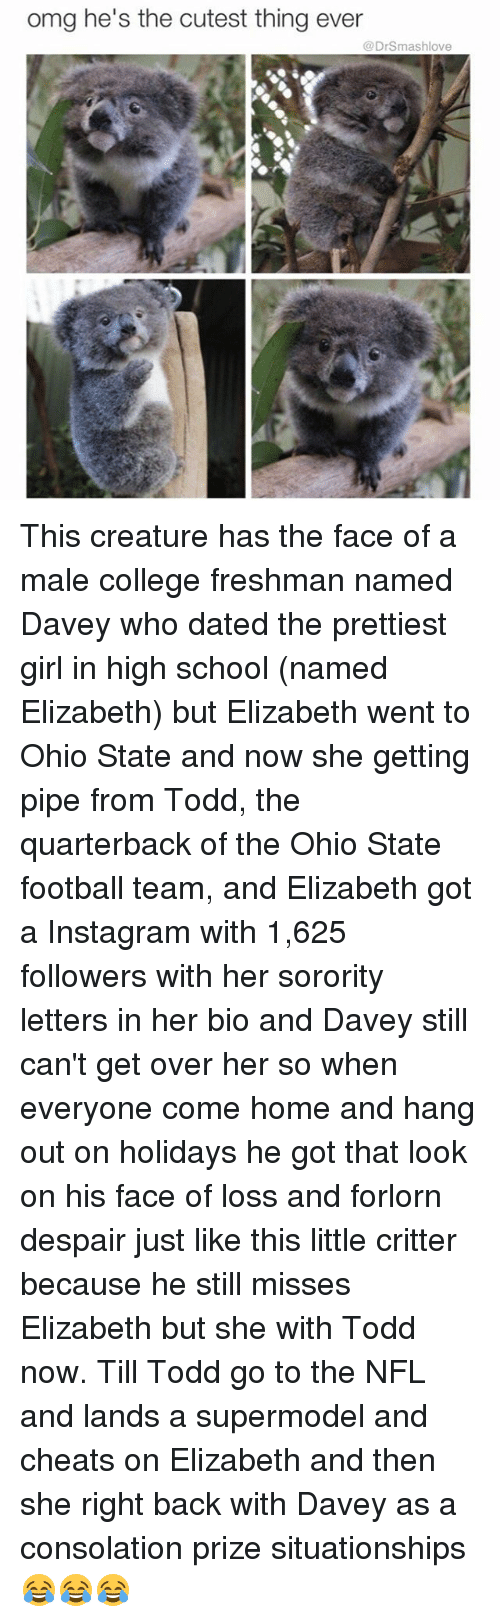 Memes, Nfl, and Ohio State Football: omg he's the cutest thing ever  @DrSmashlove This creature has the face of a male college freshman named Davey who dated the prettiest girl in high school (named Elizabeth) but Elizabeth went to Ohio State and now she getting pipe from Todd, the quarterback of the Ohio State football team, and Elizabeth got a Instagram with 1,625 followers with her sorority letters in her bio and Davey still can't get over her so when everyone come home and hang out on holidays he got that look on his face of loss and forlorn despair just like this little critter because he still misses Elizabeth but she with Todd now. Till Todd go to the NFL and lands a supermodel and cheats on Elizabeth and then she right back with Davey as a consolation prize situationships 😂😂😂